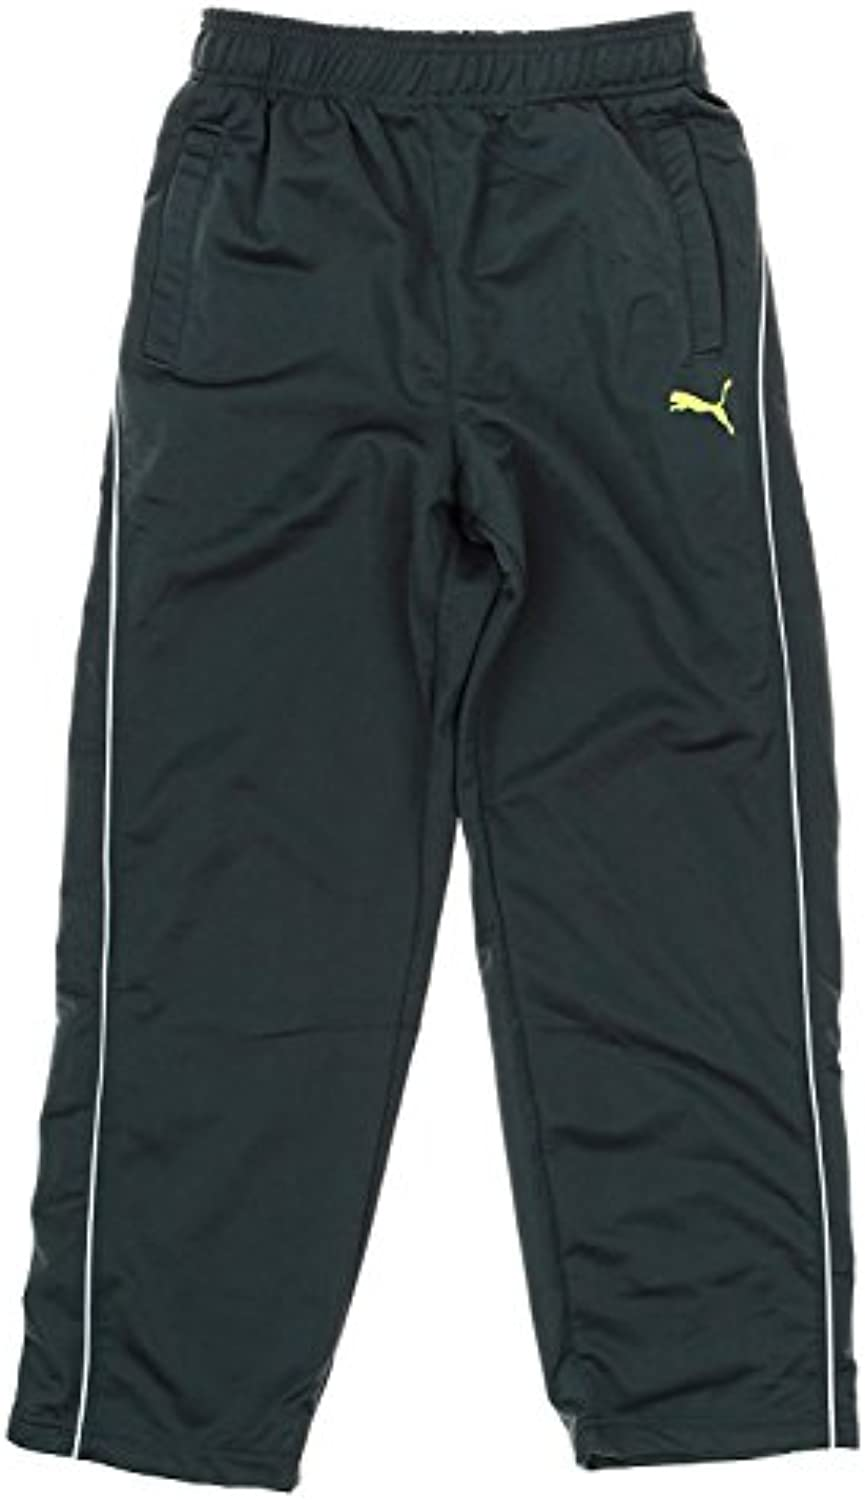 Puma Youth Big Boys 8 20 Pure Coat Track Pant